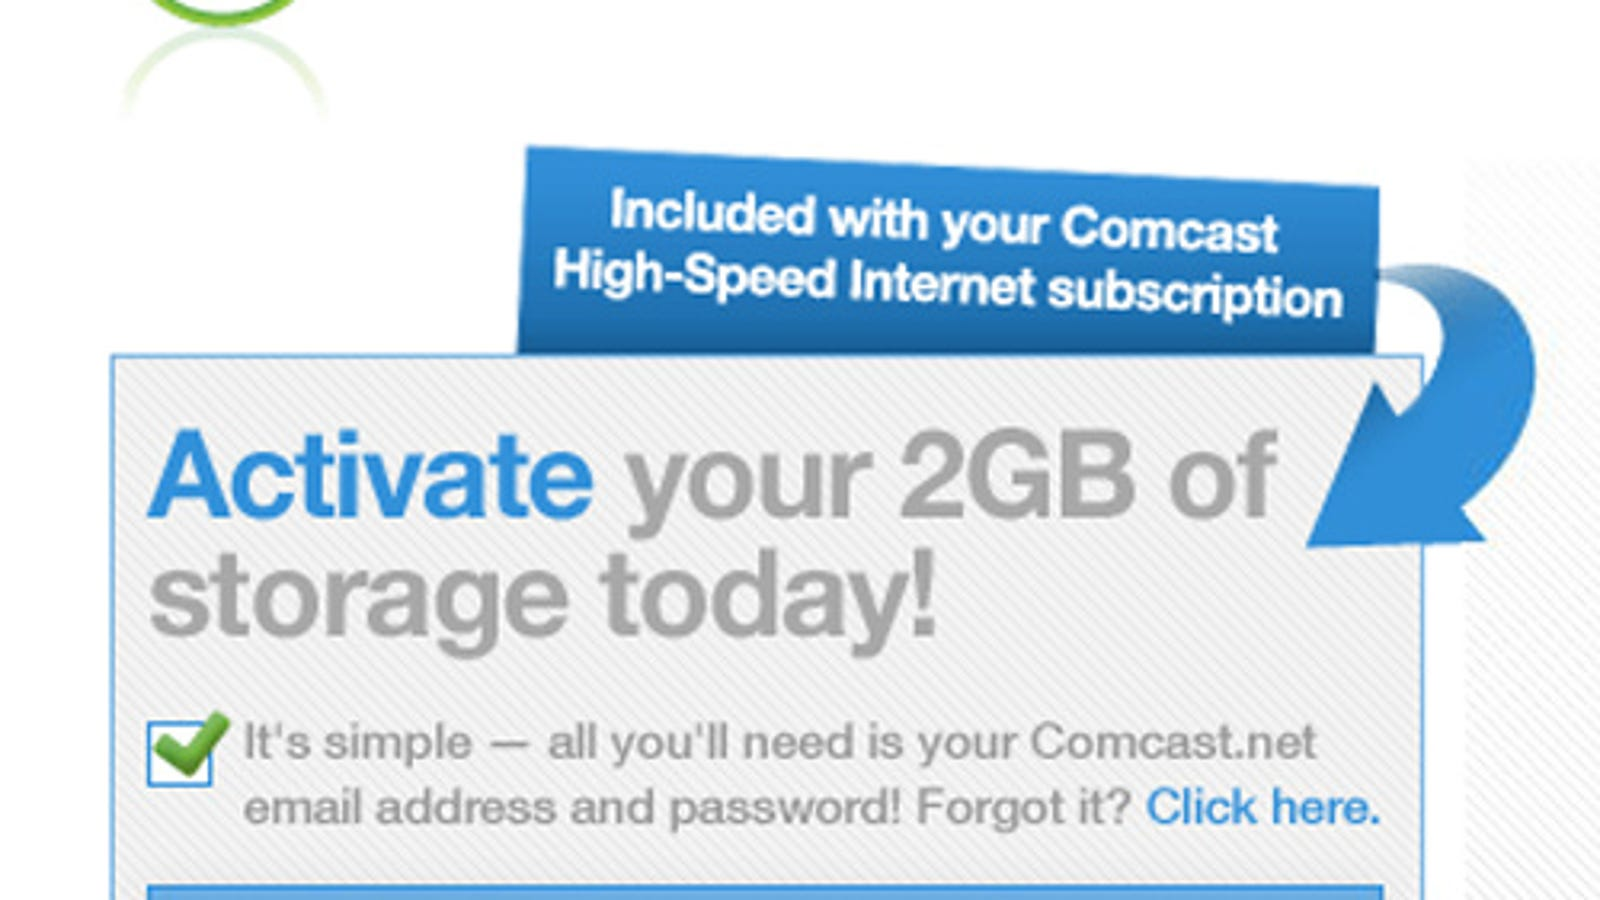 Comcast Offers Up to 200GB of Online Storage But Still Caps